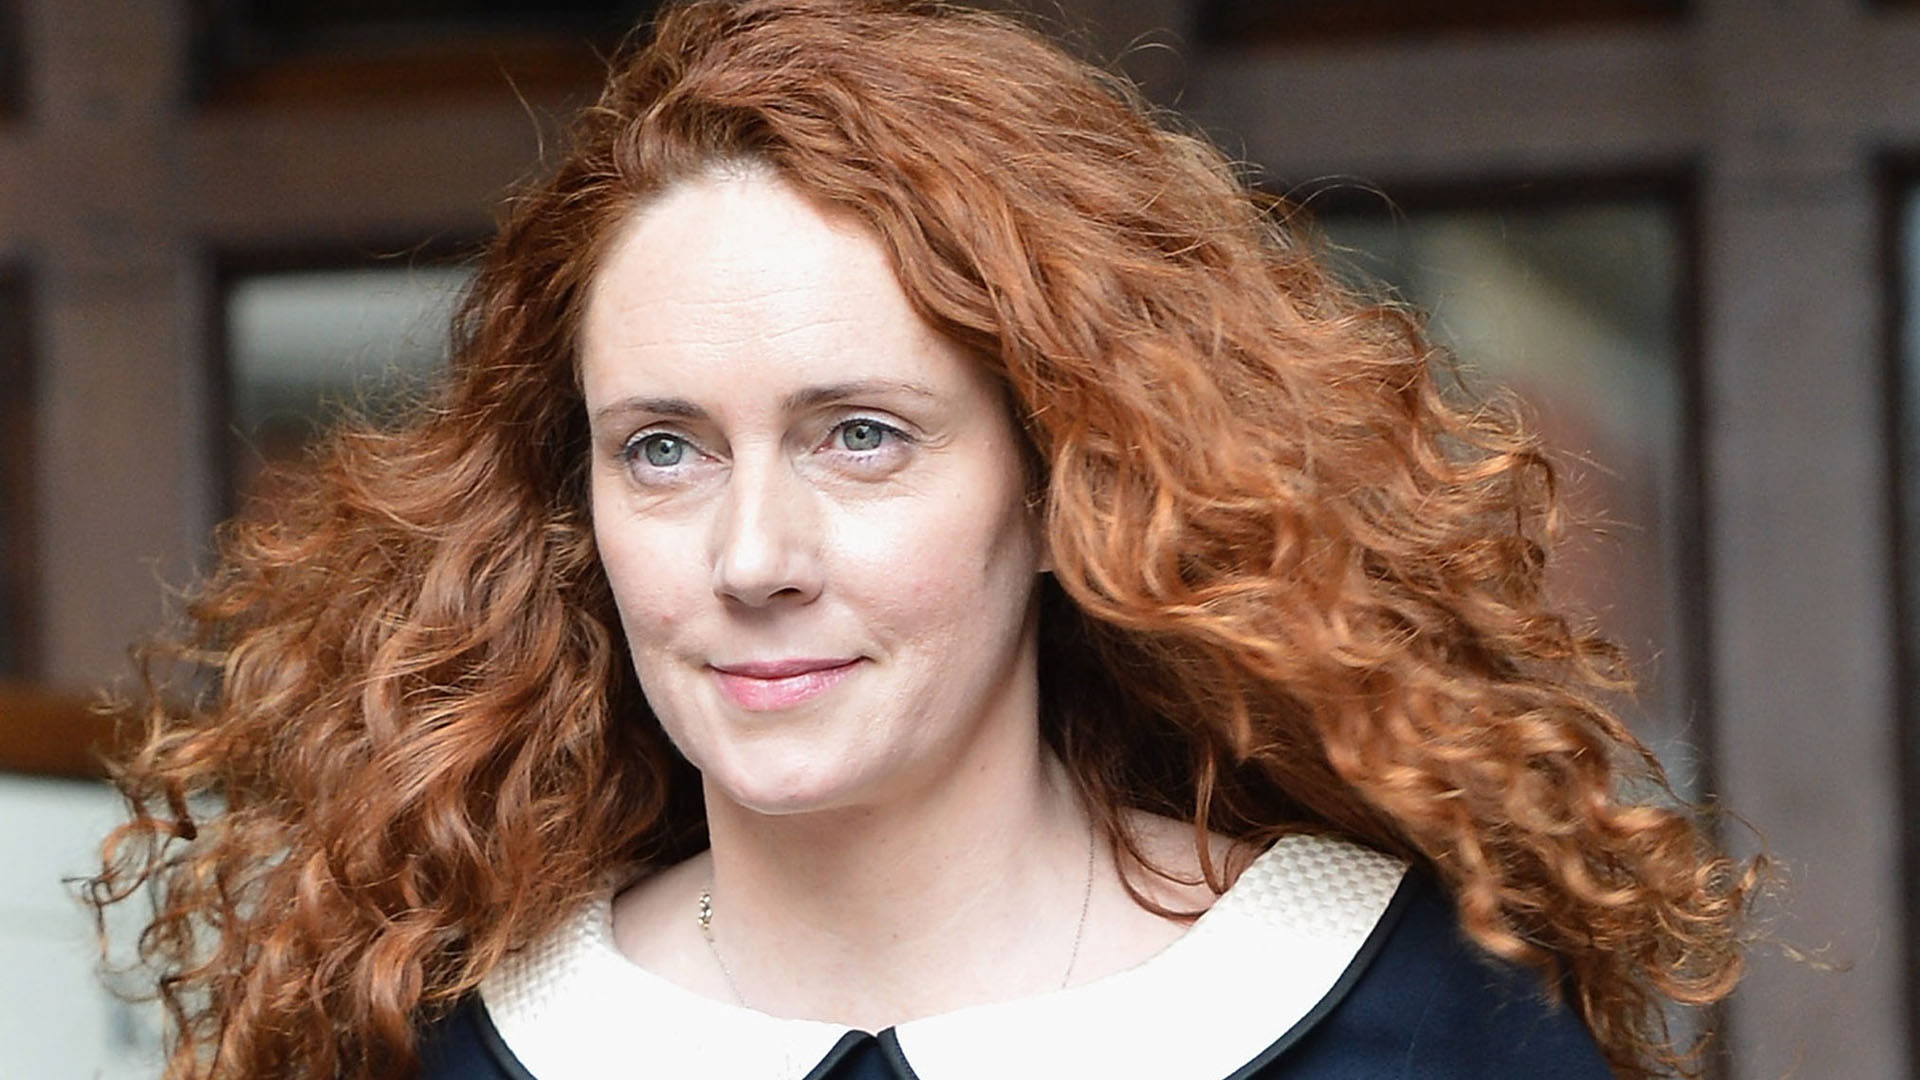 Former Chief Executive Of News International Rebekah Brooks Gives Evidence To The Leveson Inquiry